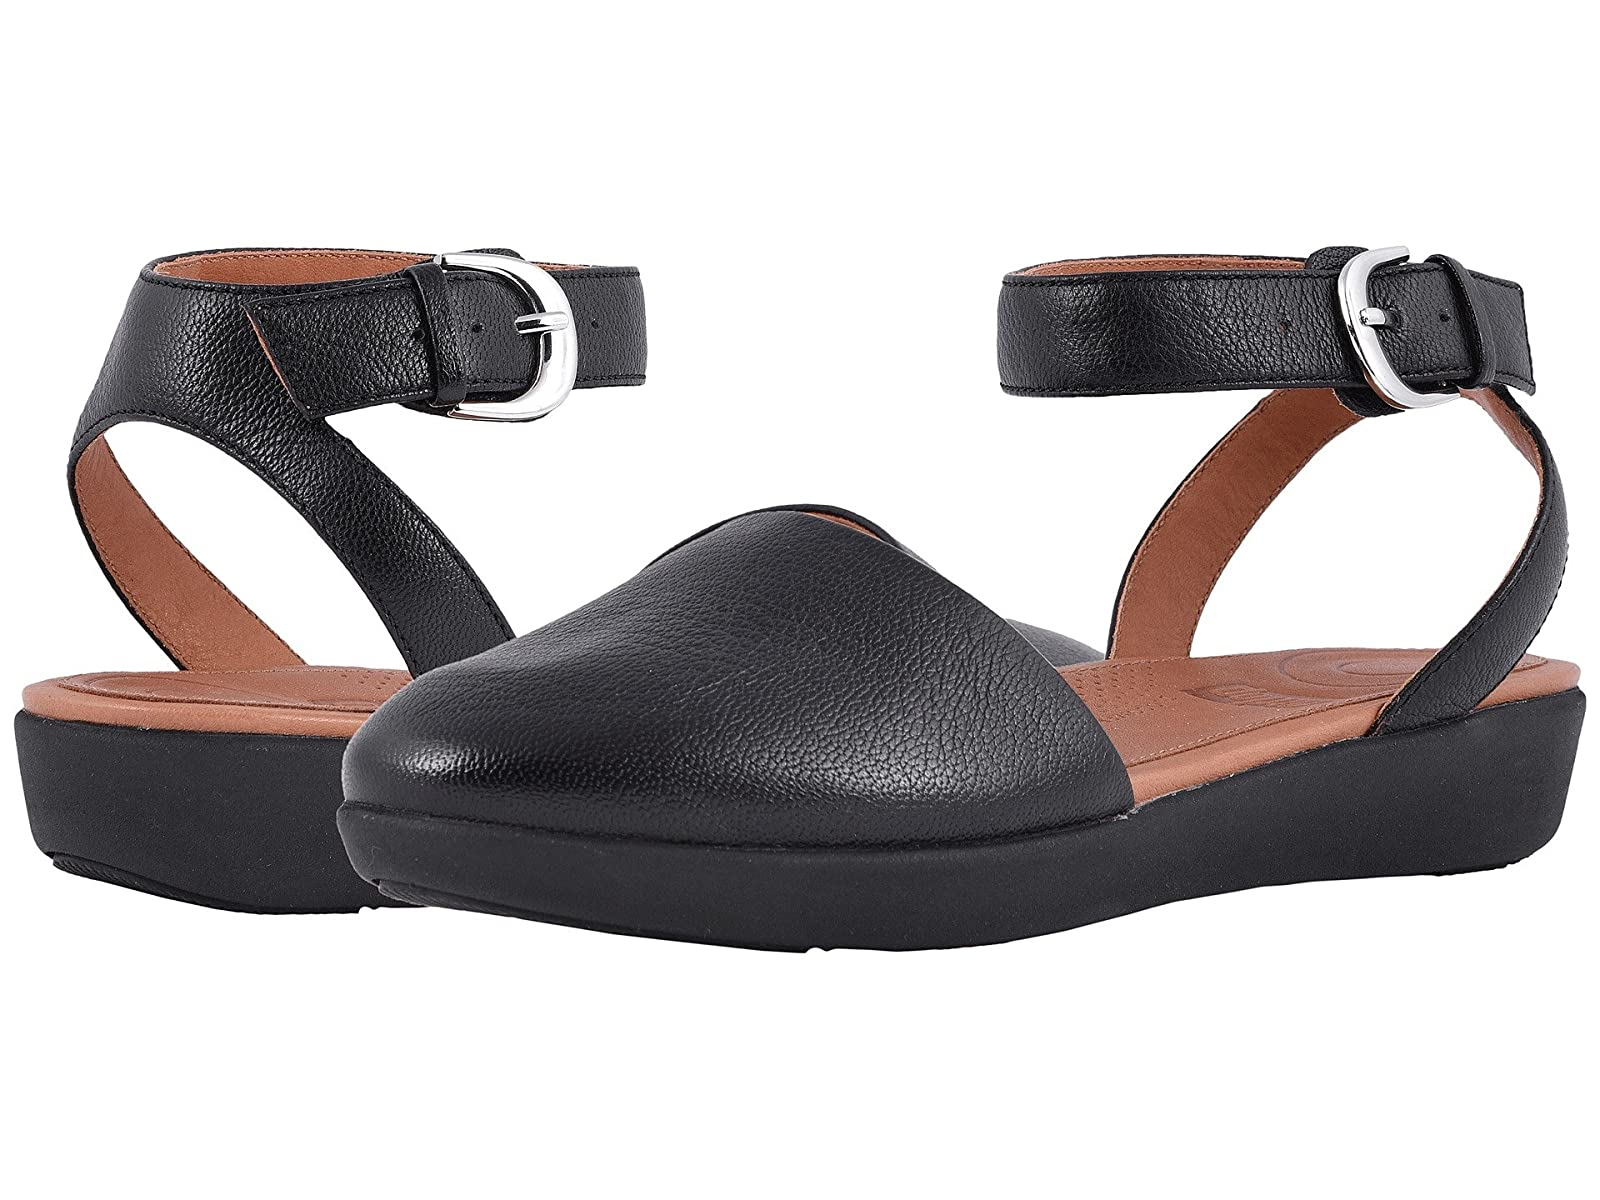 FitFlop Cova Closed Toe SandalsAtmospheric grades have affordable shoes